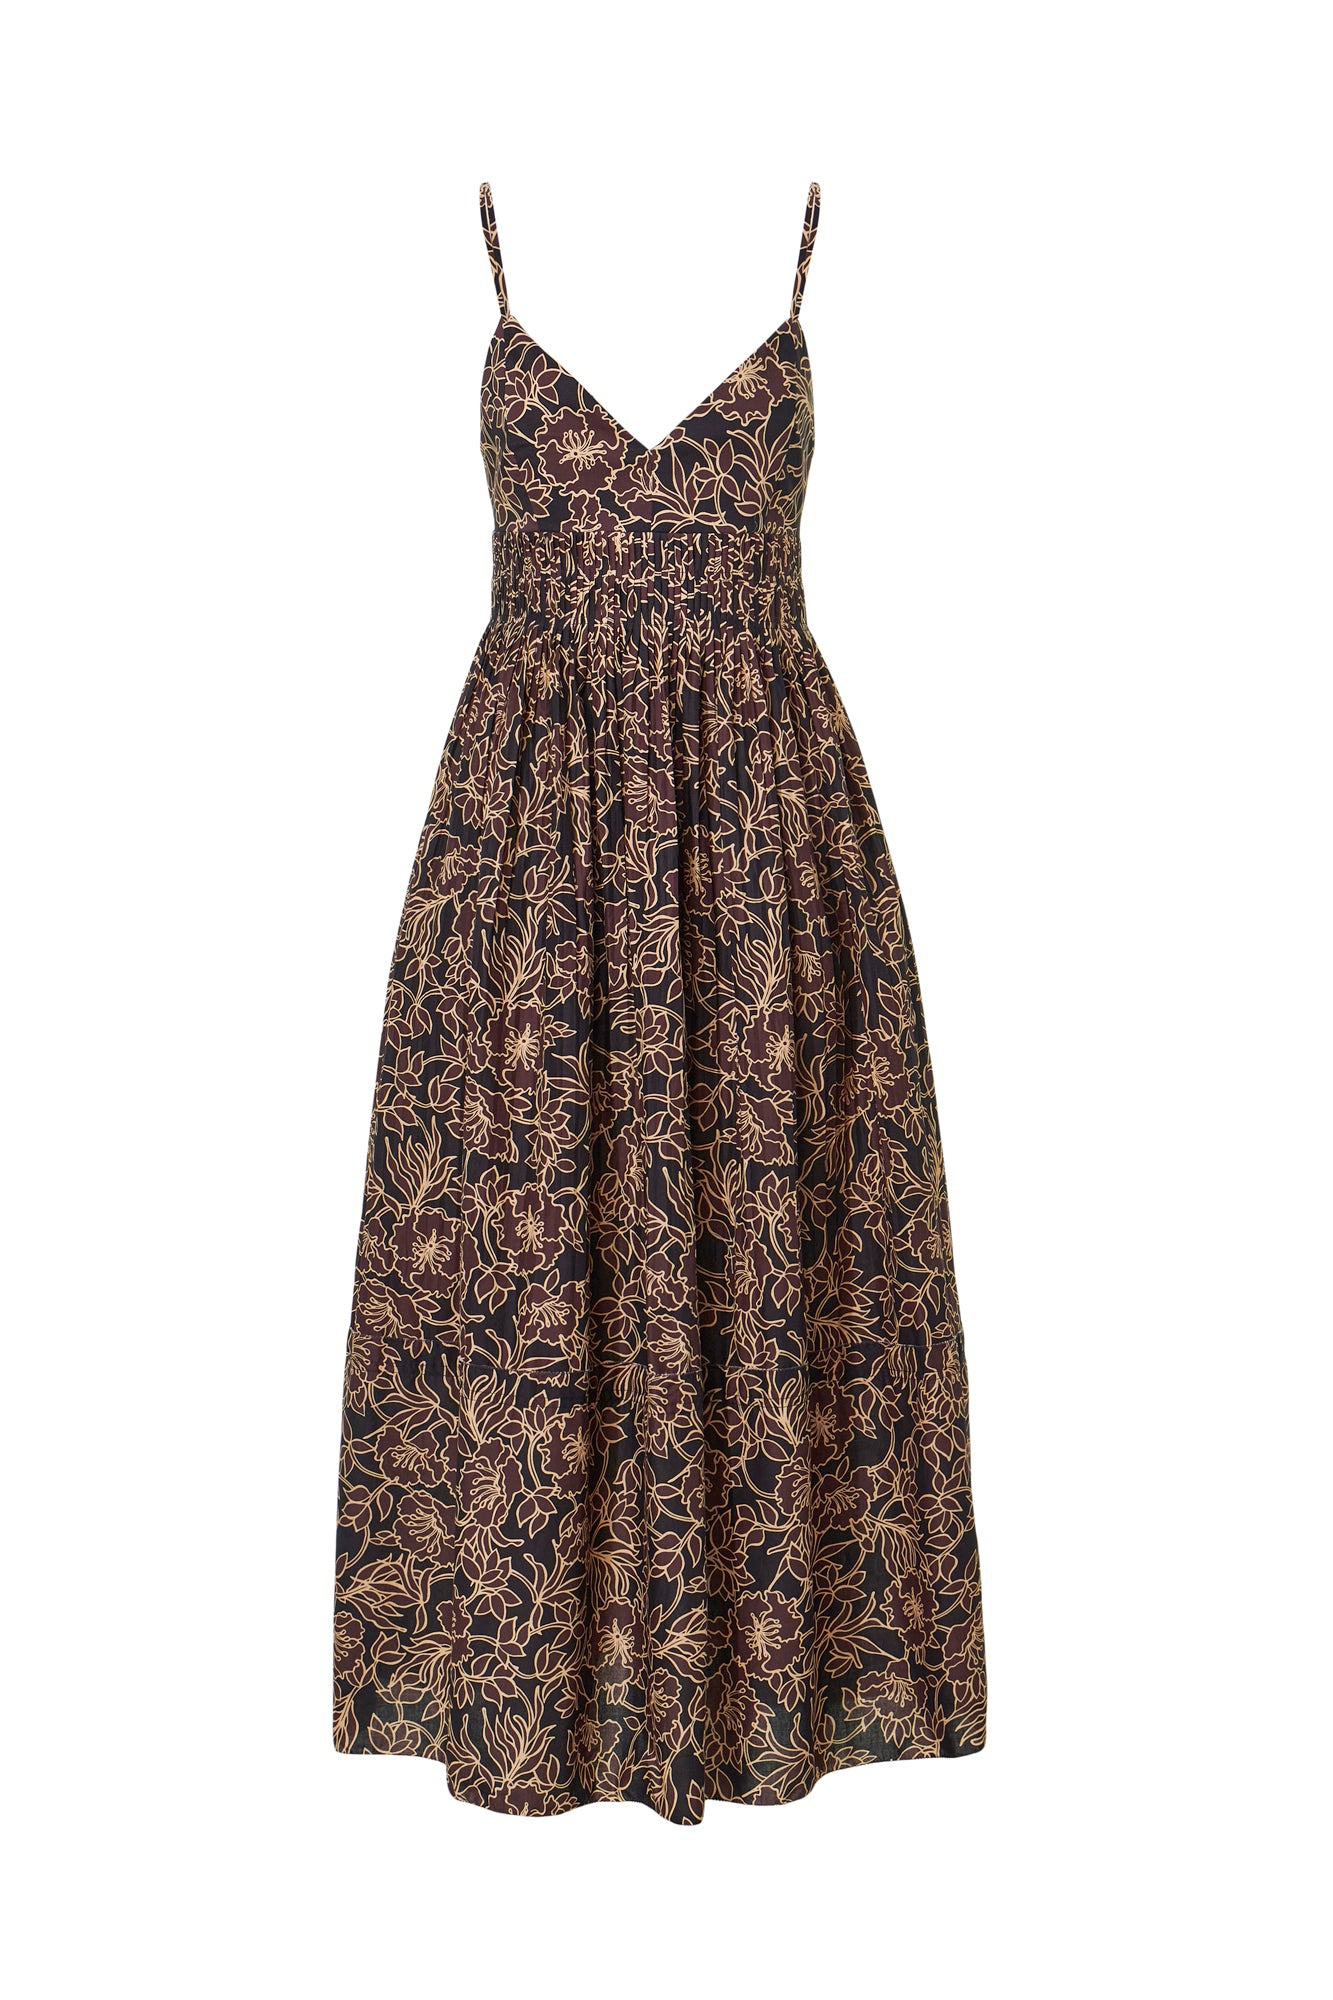 Susan Dress - Graphic Flora Cocoa